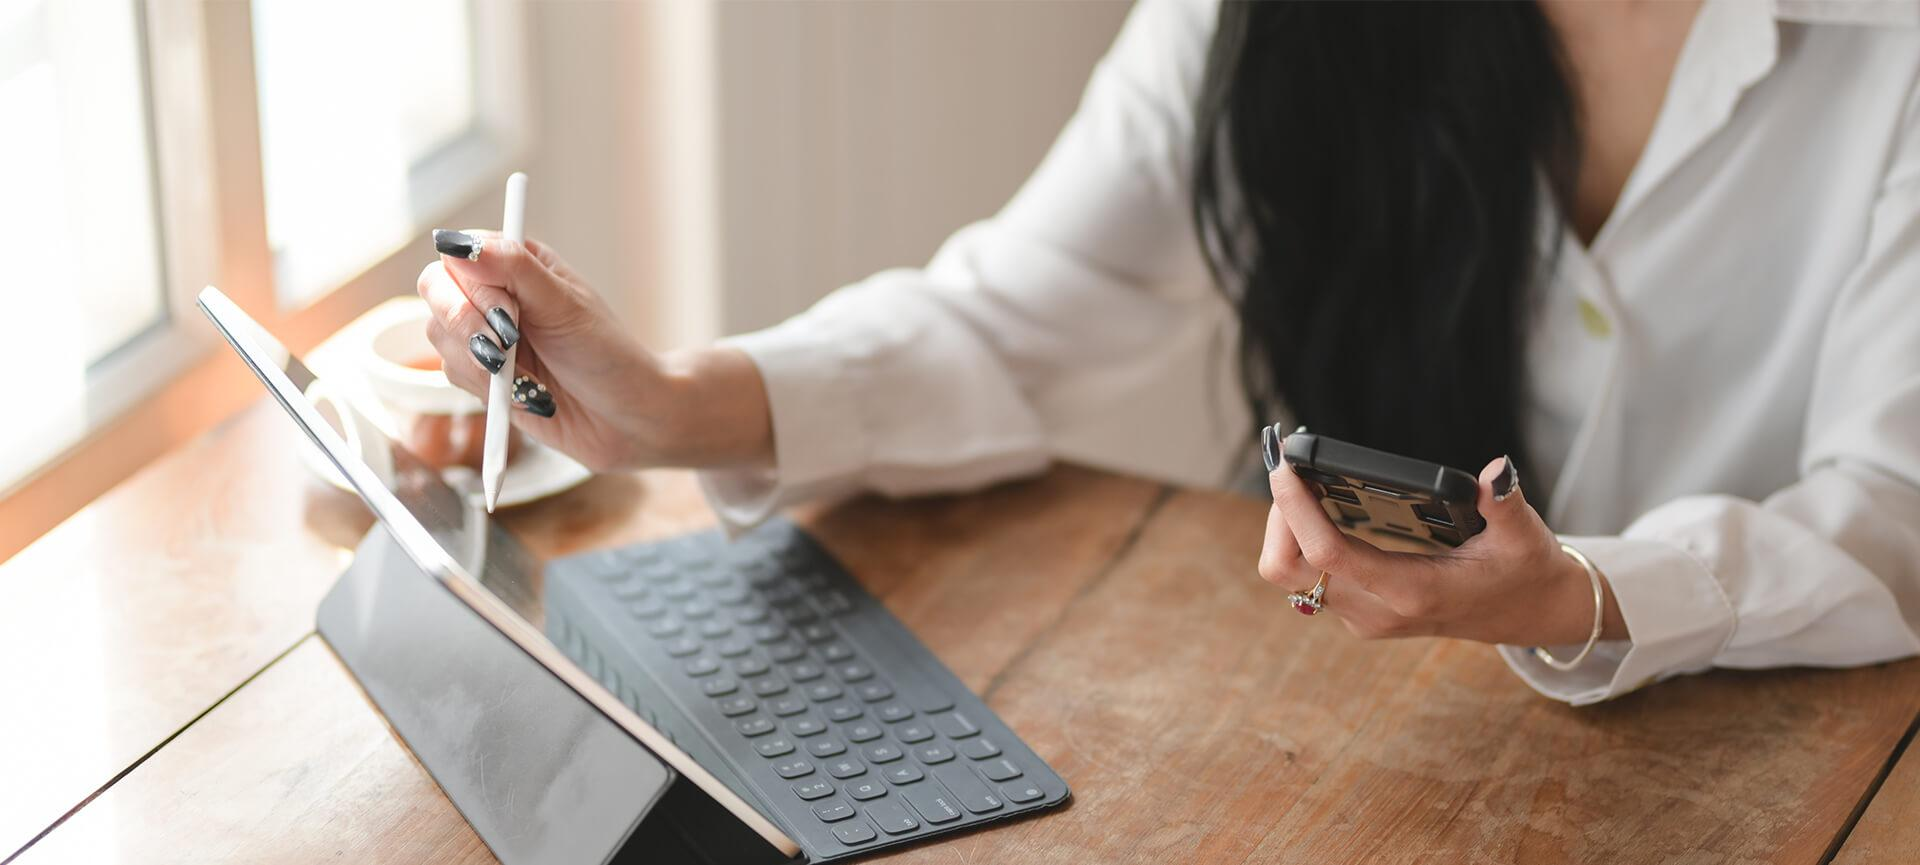 Woman working from home with tablet and phone